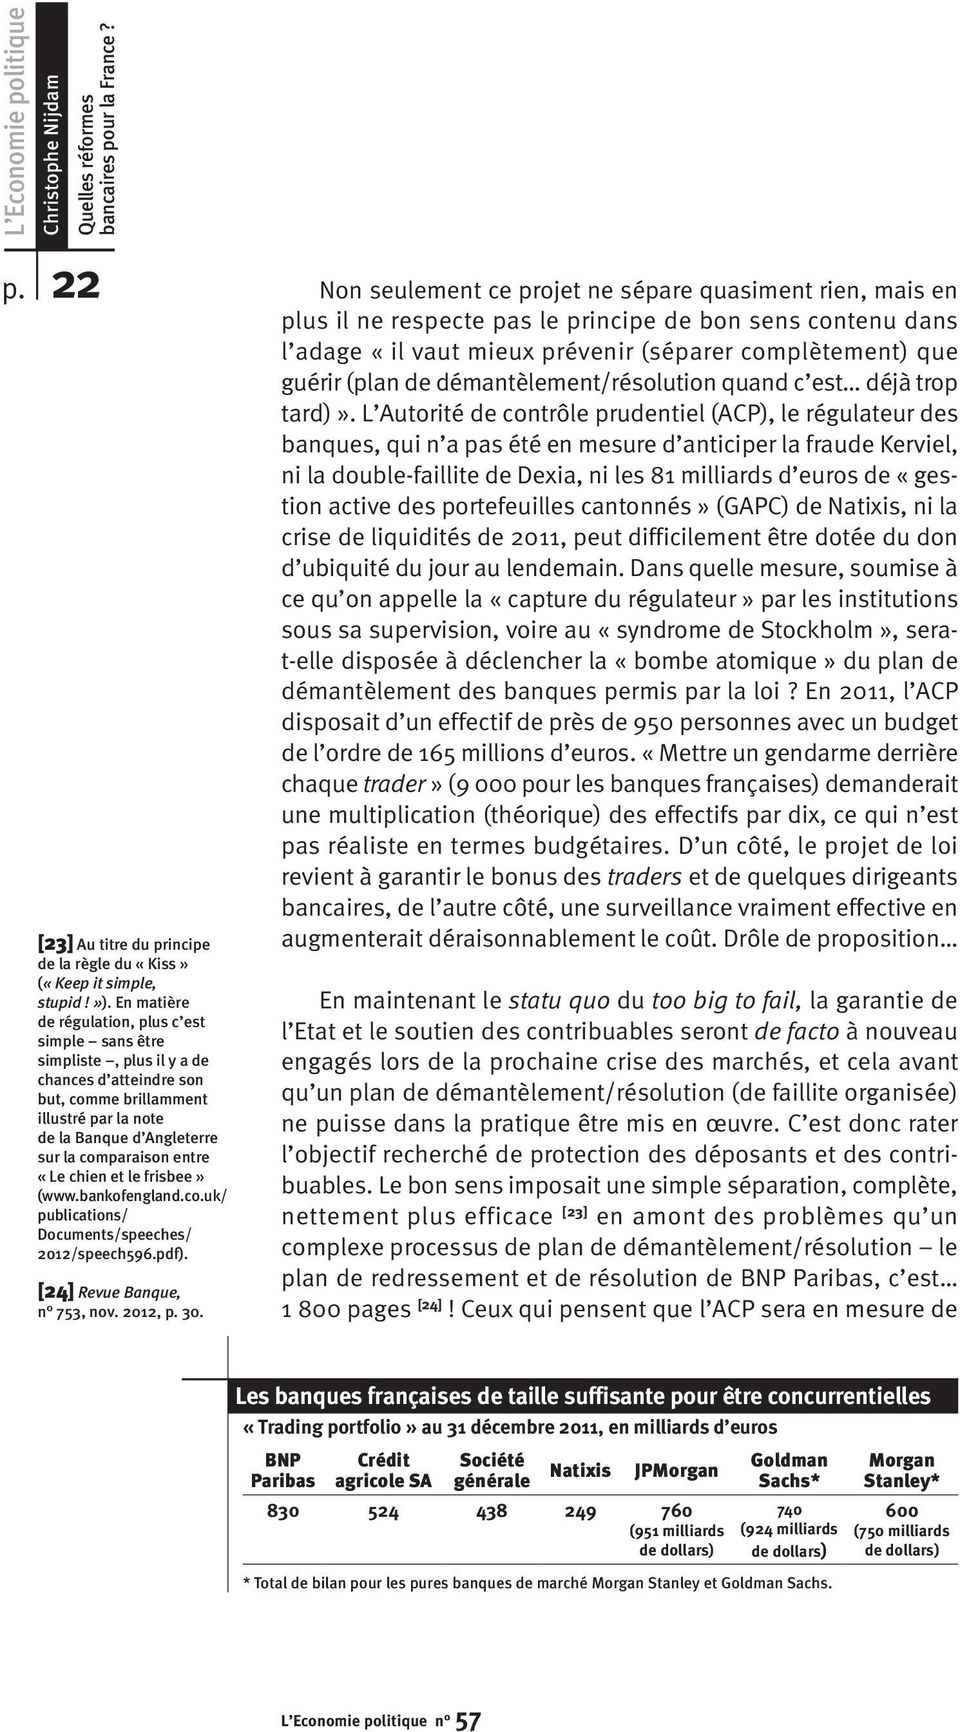 «Le chien et le frisbee» (www.bankofengland.co.uk/ publications/ Documents/speeches/ 2012/speech596.pdf). [24] Revue Banque, n 753, nov. 2012, p. 30.